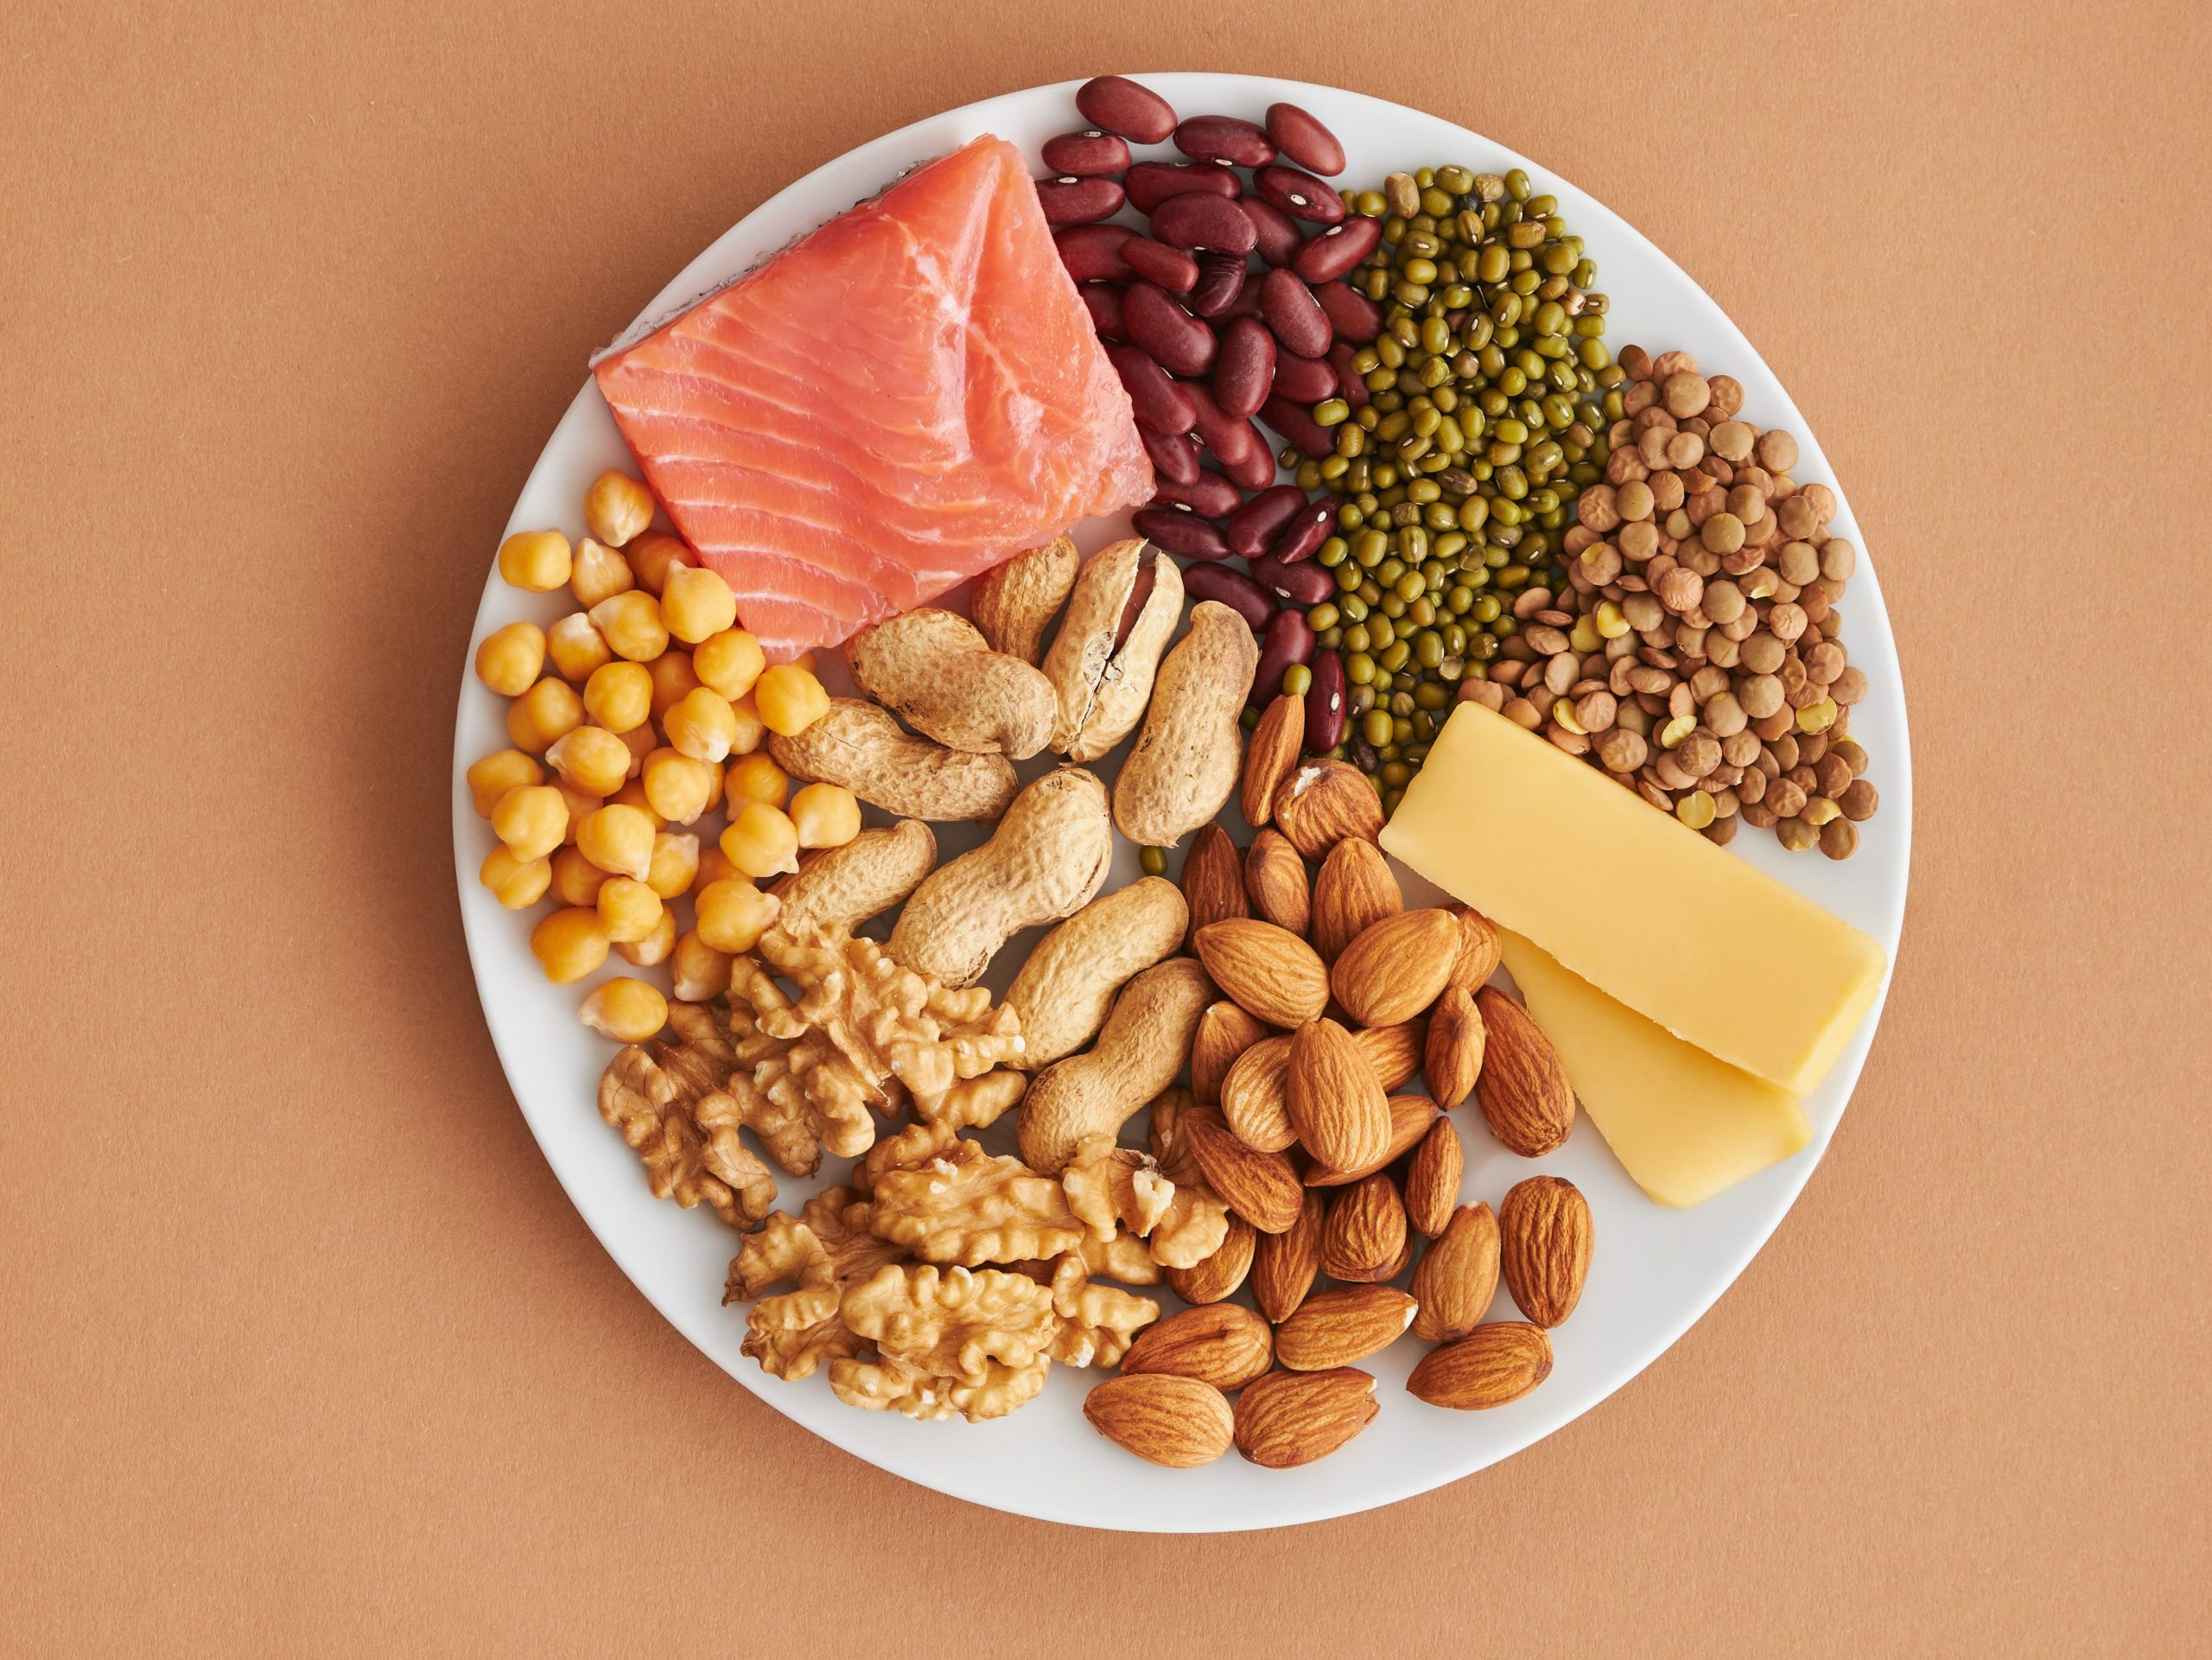 An image of a plate of different types of foods.